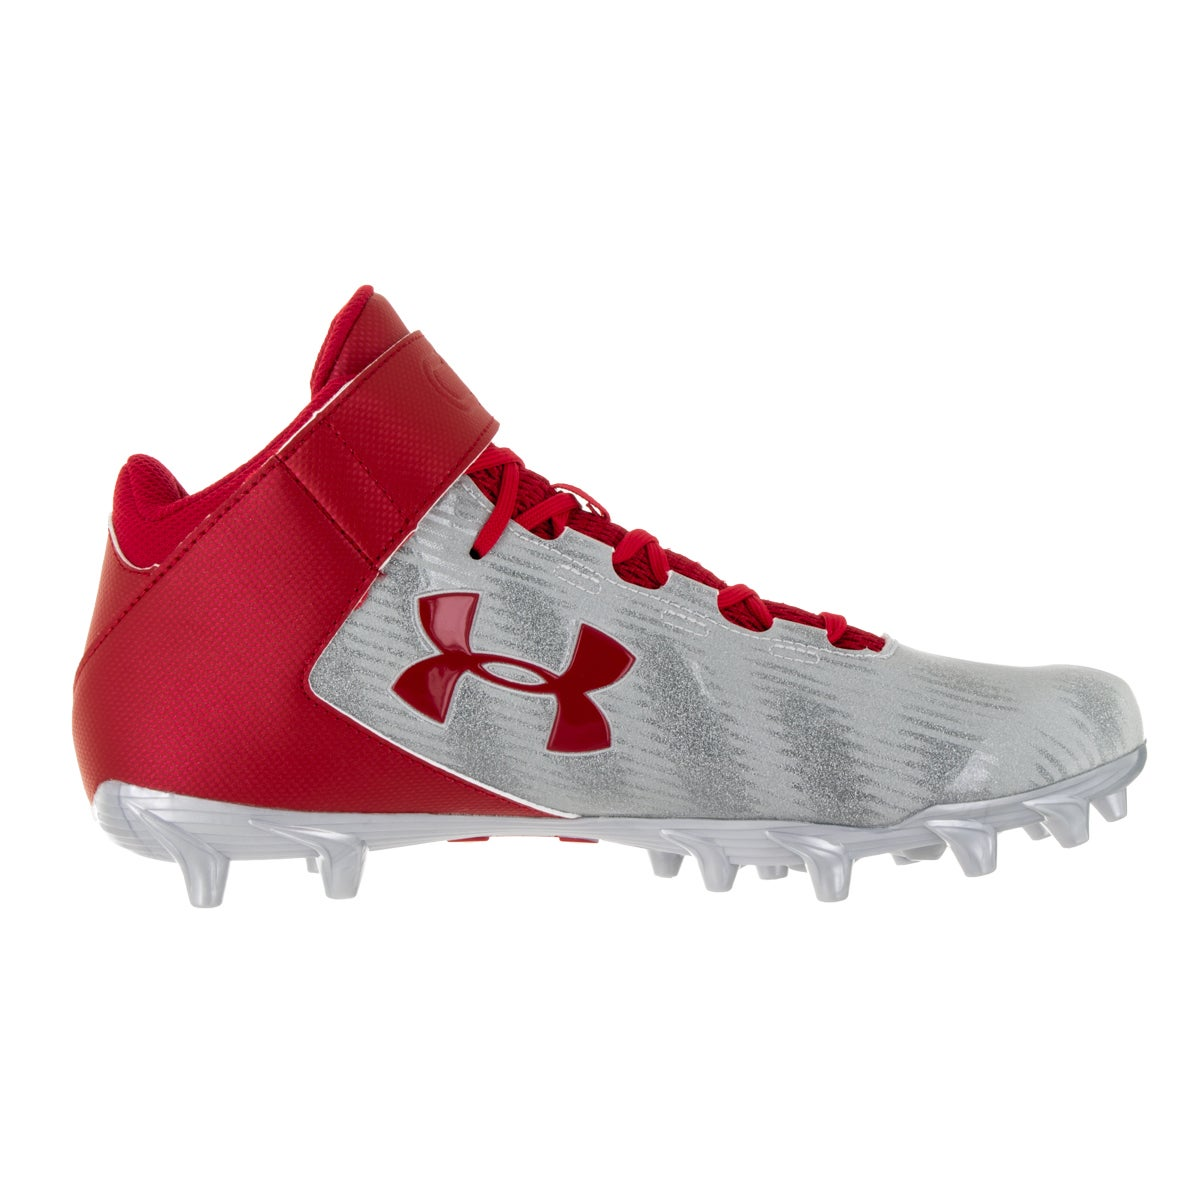 981f16d11aa9 Shop Under Armour Men s UA C1N Mid MC Red Msv Football Cleat - Free  Shipping Today - Overstock - 13395578